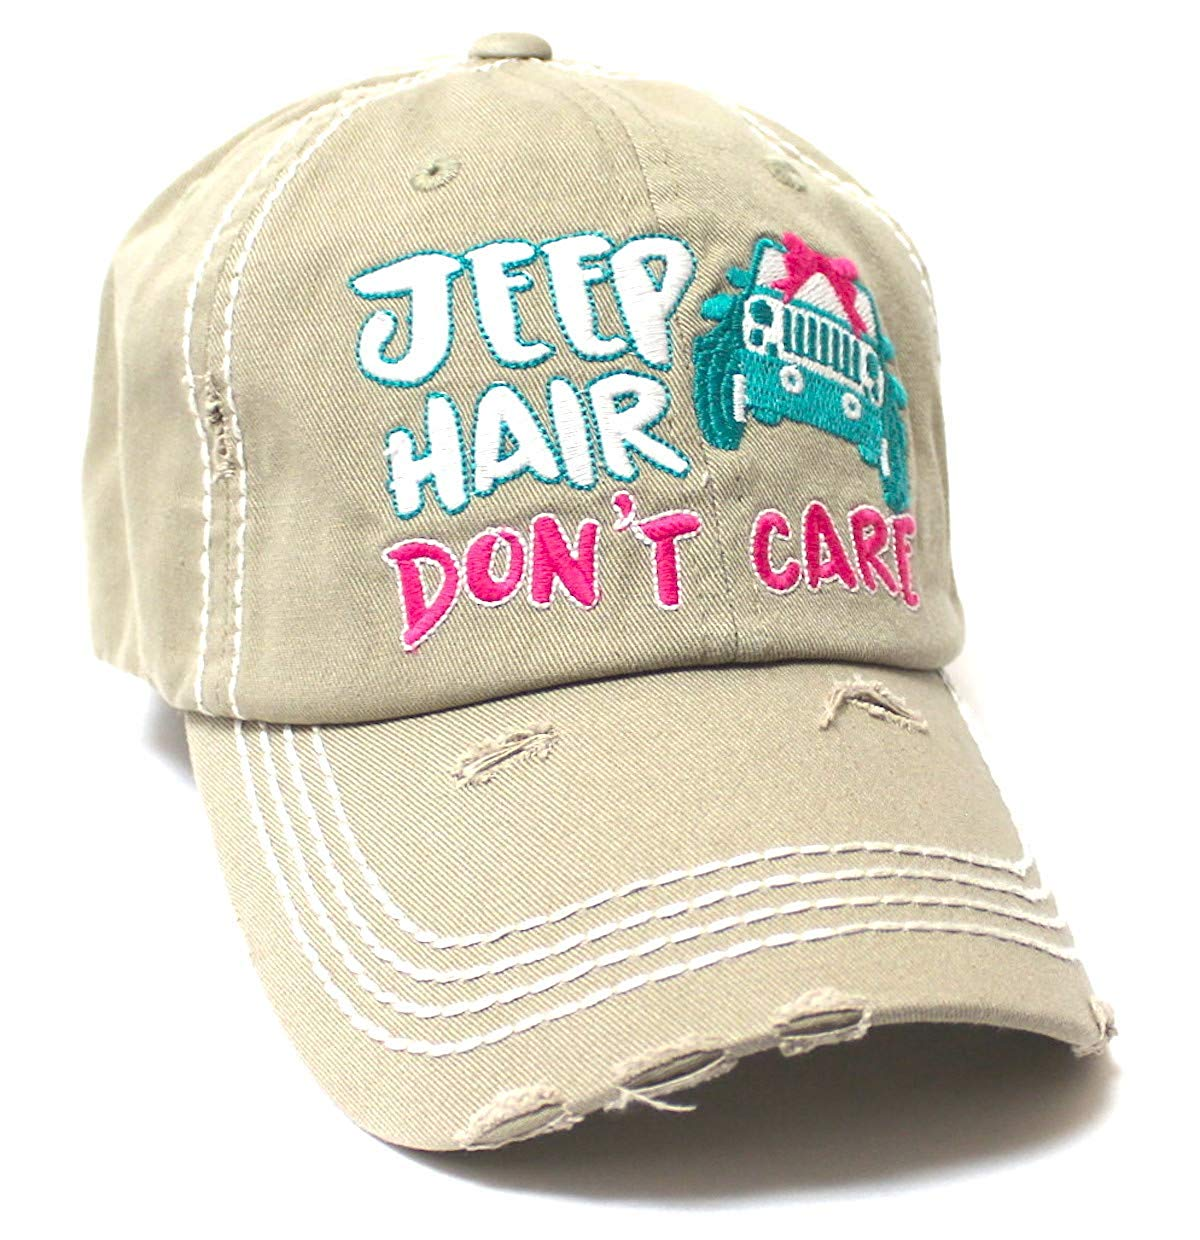 Ladies Bow-Tie Jeep Hair Don't Care Monogram Cheer Baseball Hat, Khaki - Caps 'N Vintage